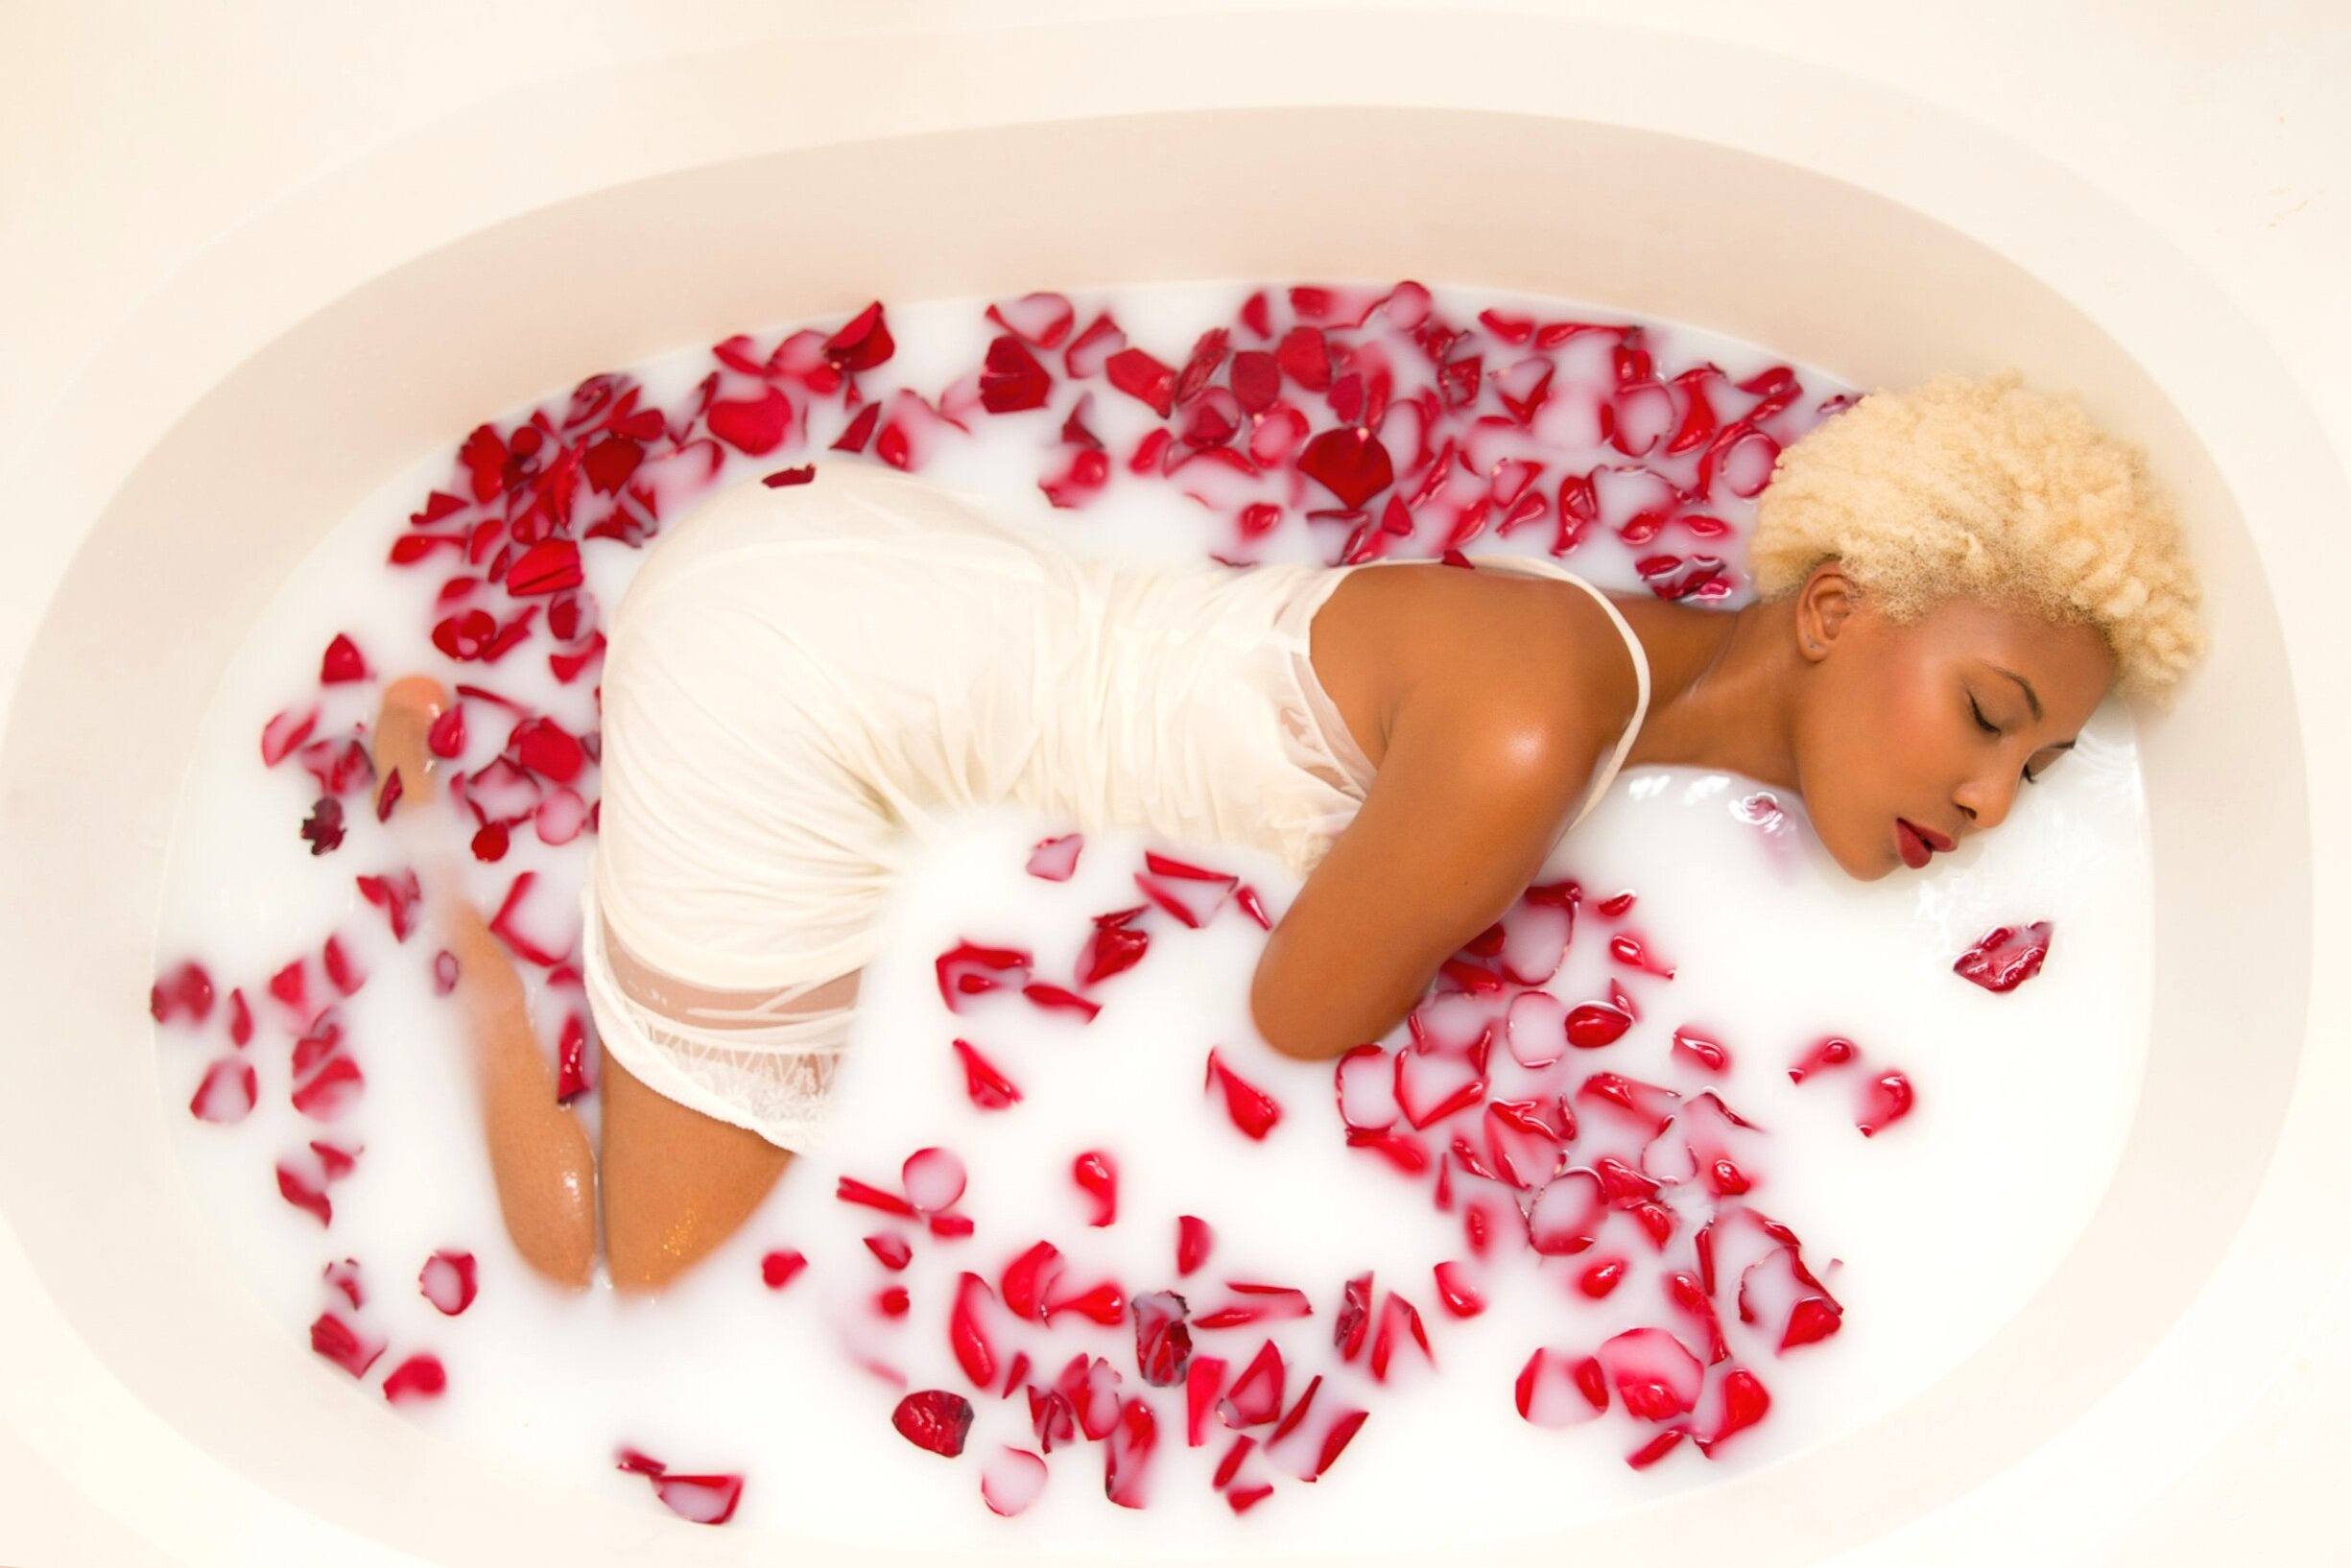 rose petal milk bath submersion